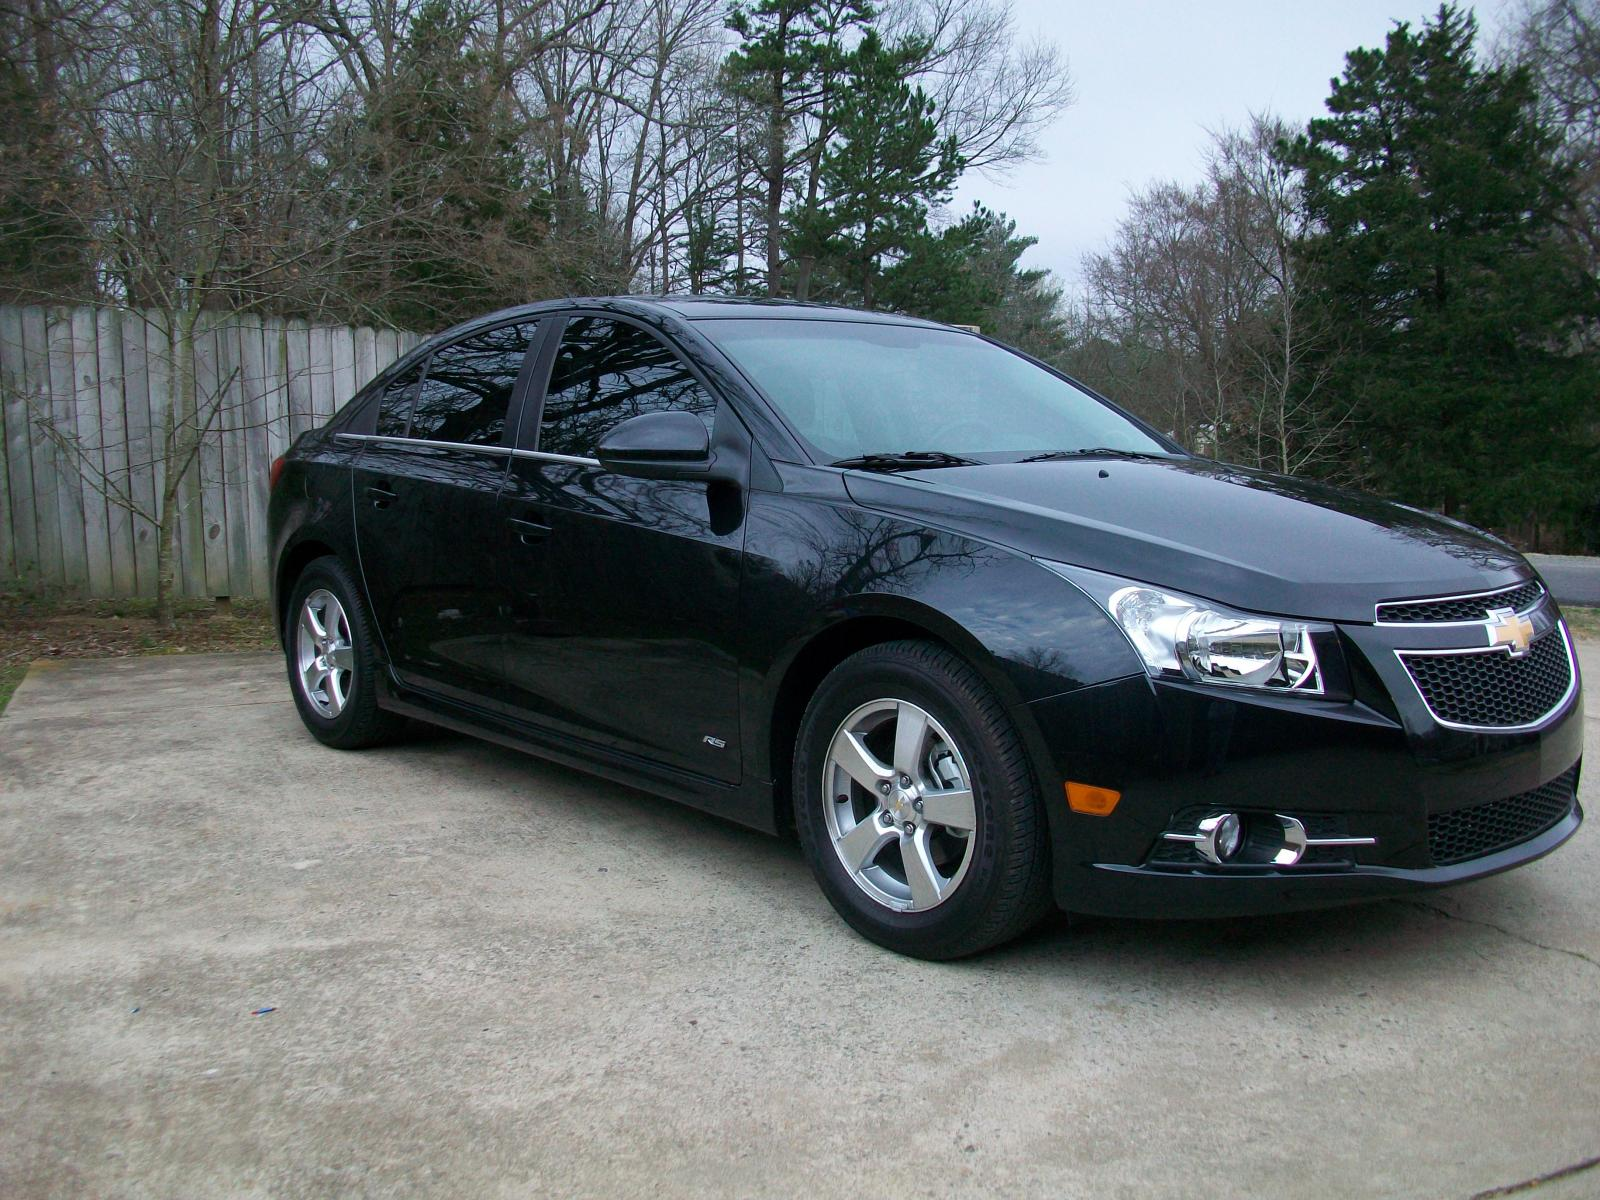 2012 chevrolet cruze lt rs the second day of owning it i got the windows tinted